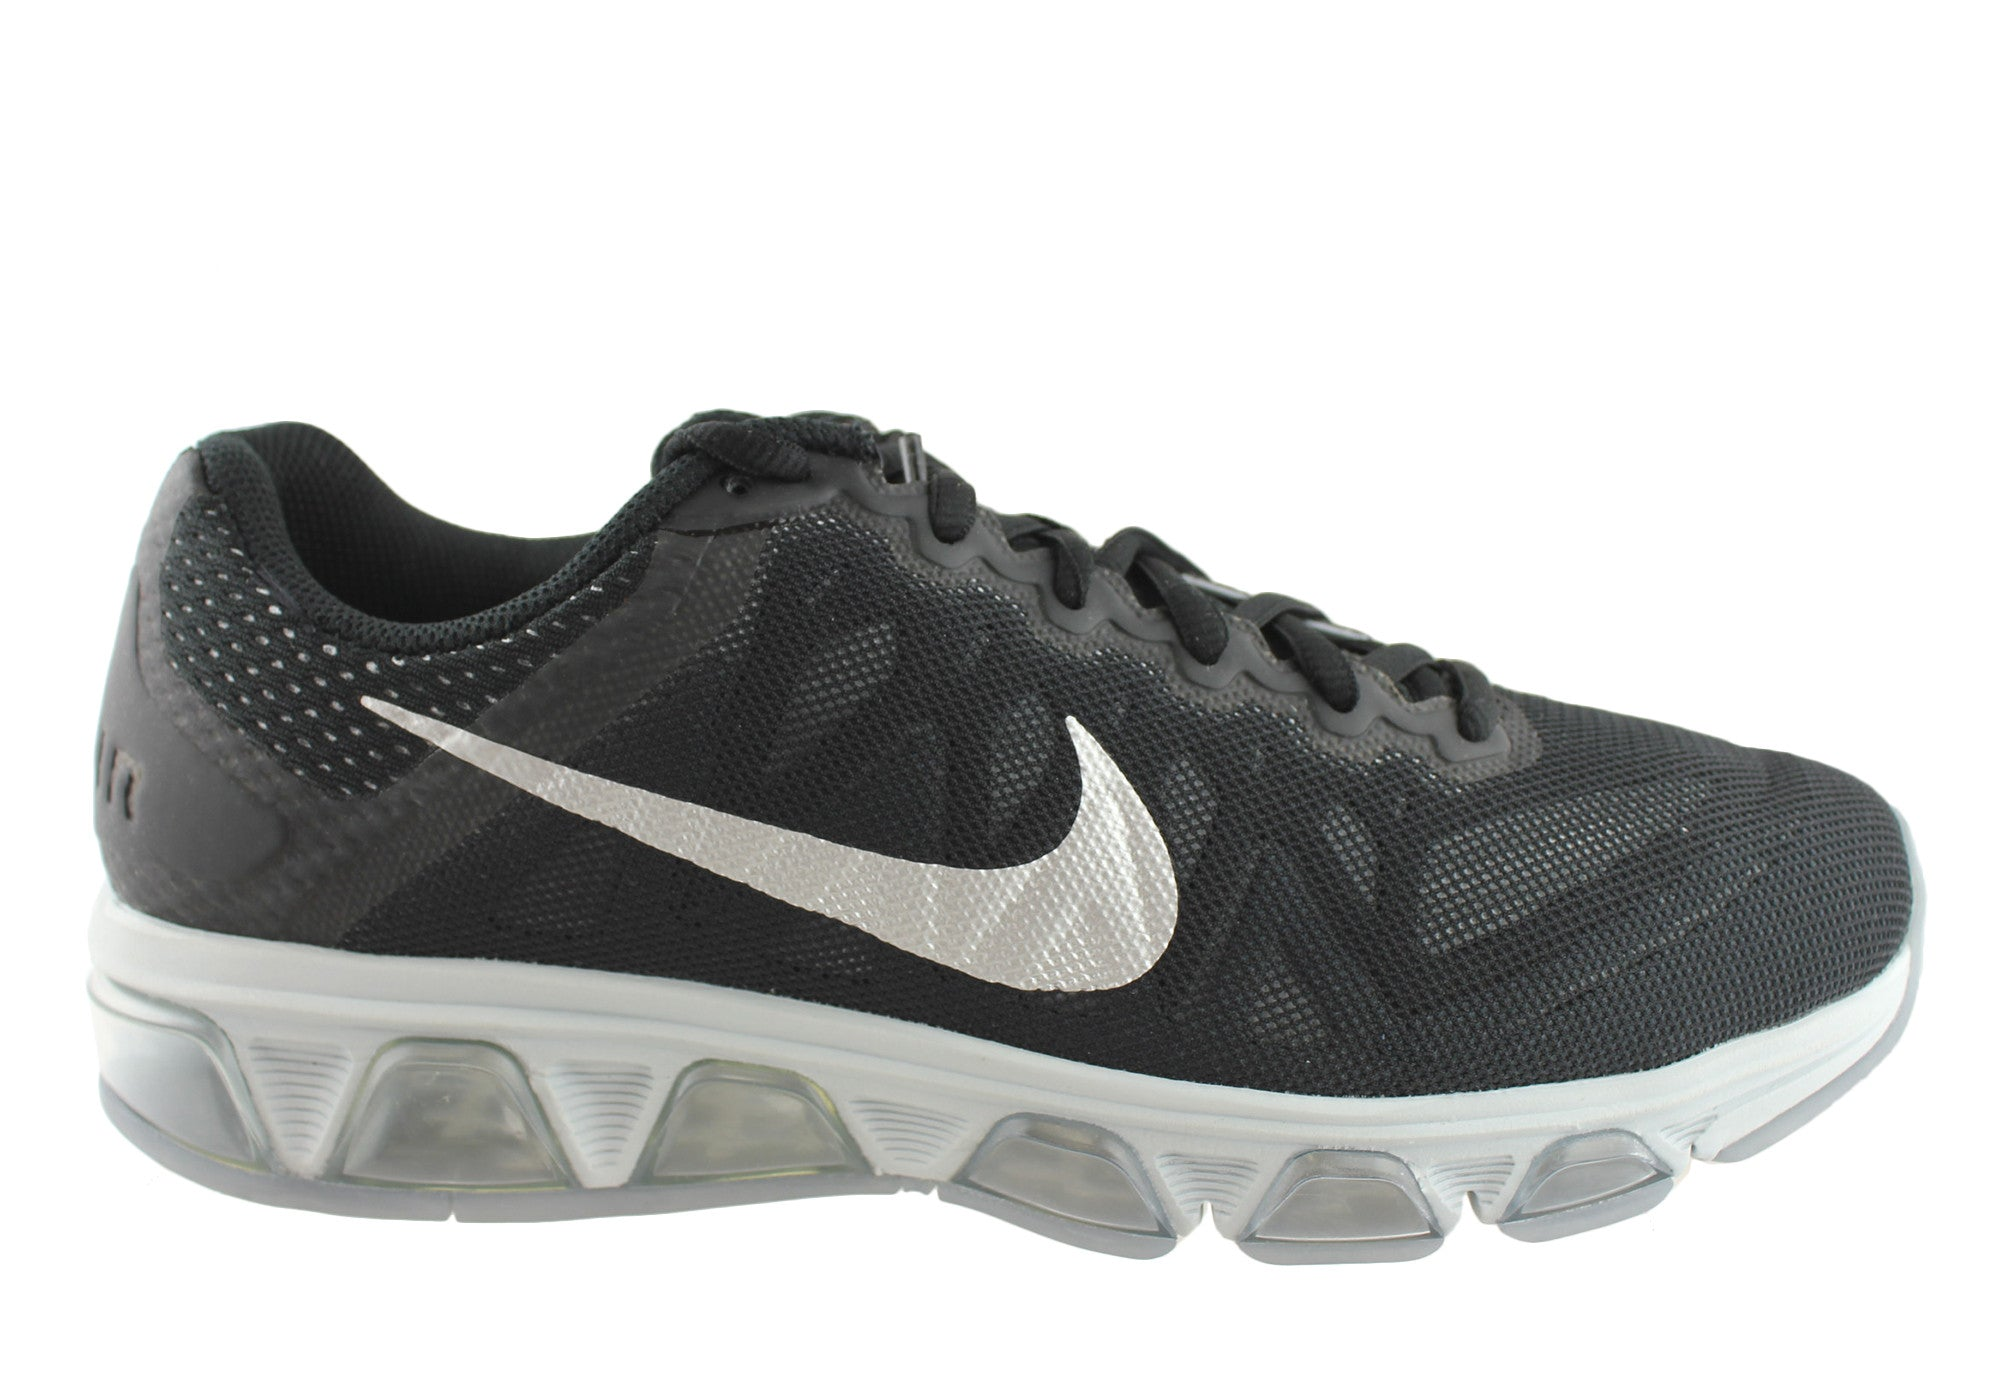 the latest 9376c f98ba Home Nike Air Max Tailwind 7 Mens Air Cushioned Running Shoes. Black Silver  ...